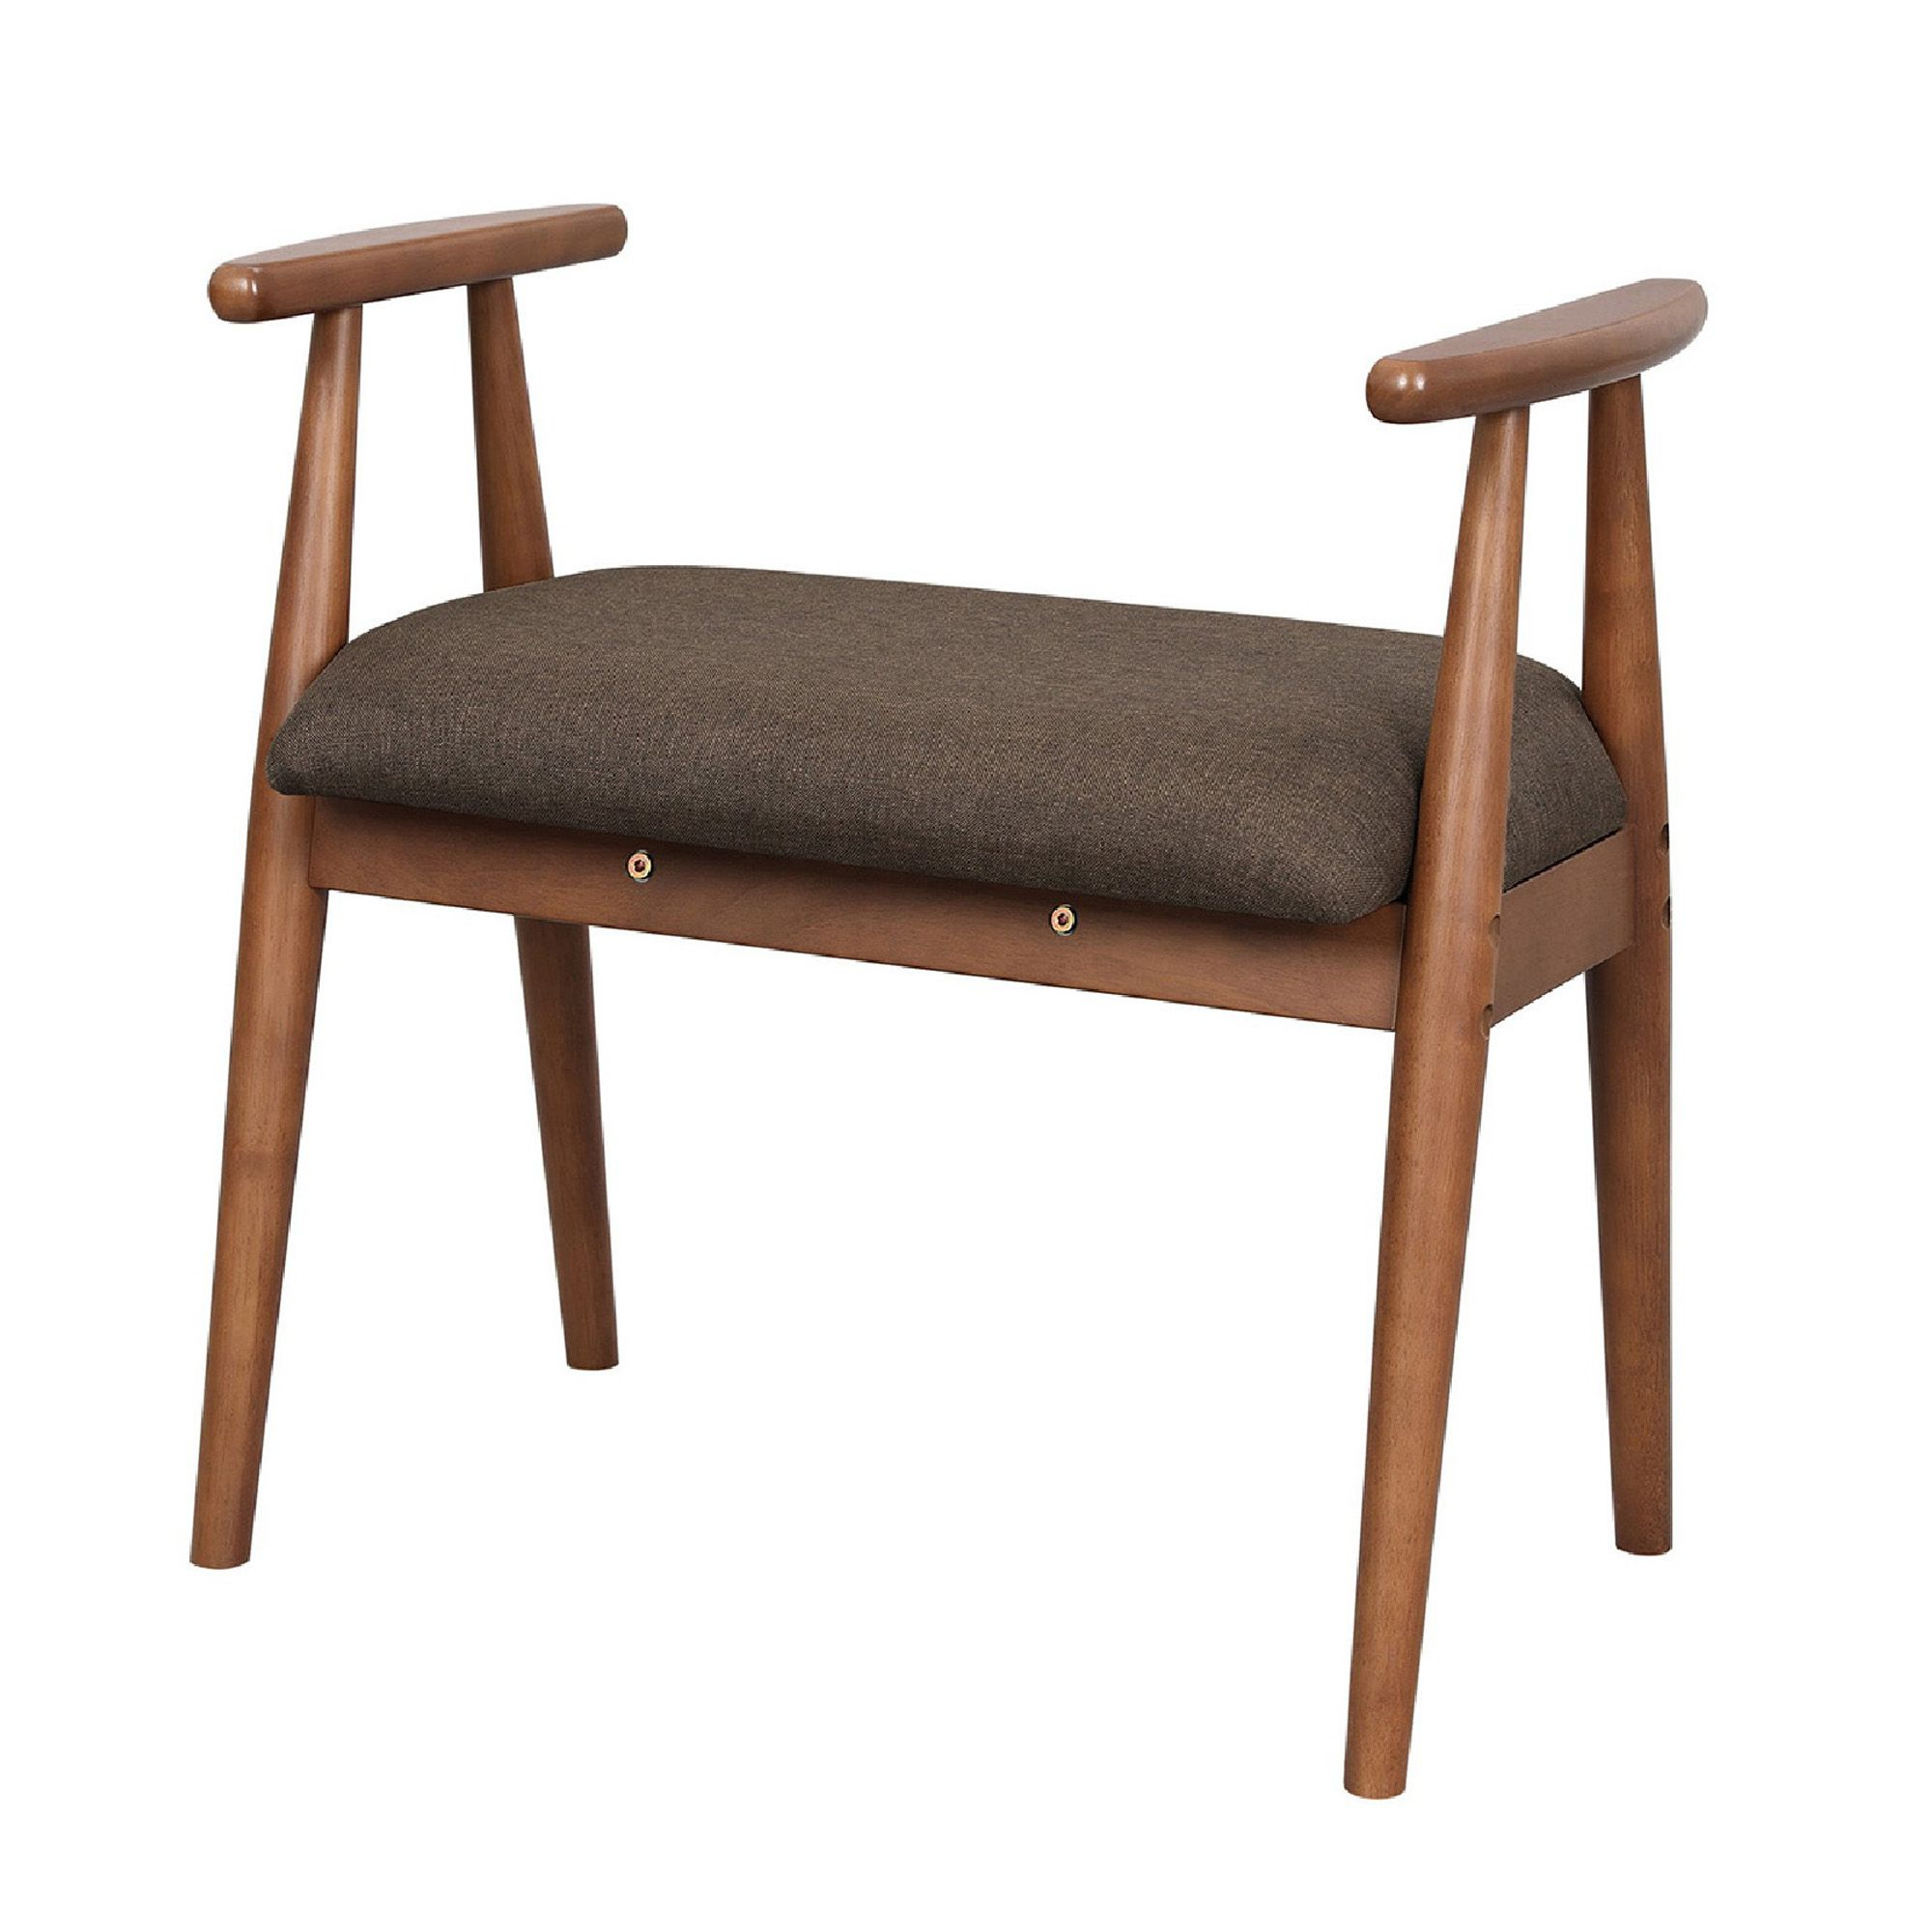 Favorite Wooden Frame Shoe Bench With Padded Seat And Splayed Legs Throughout Bucci Slipper Chairs (View 17 of 20)